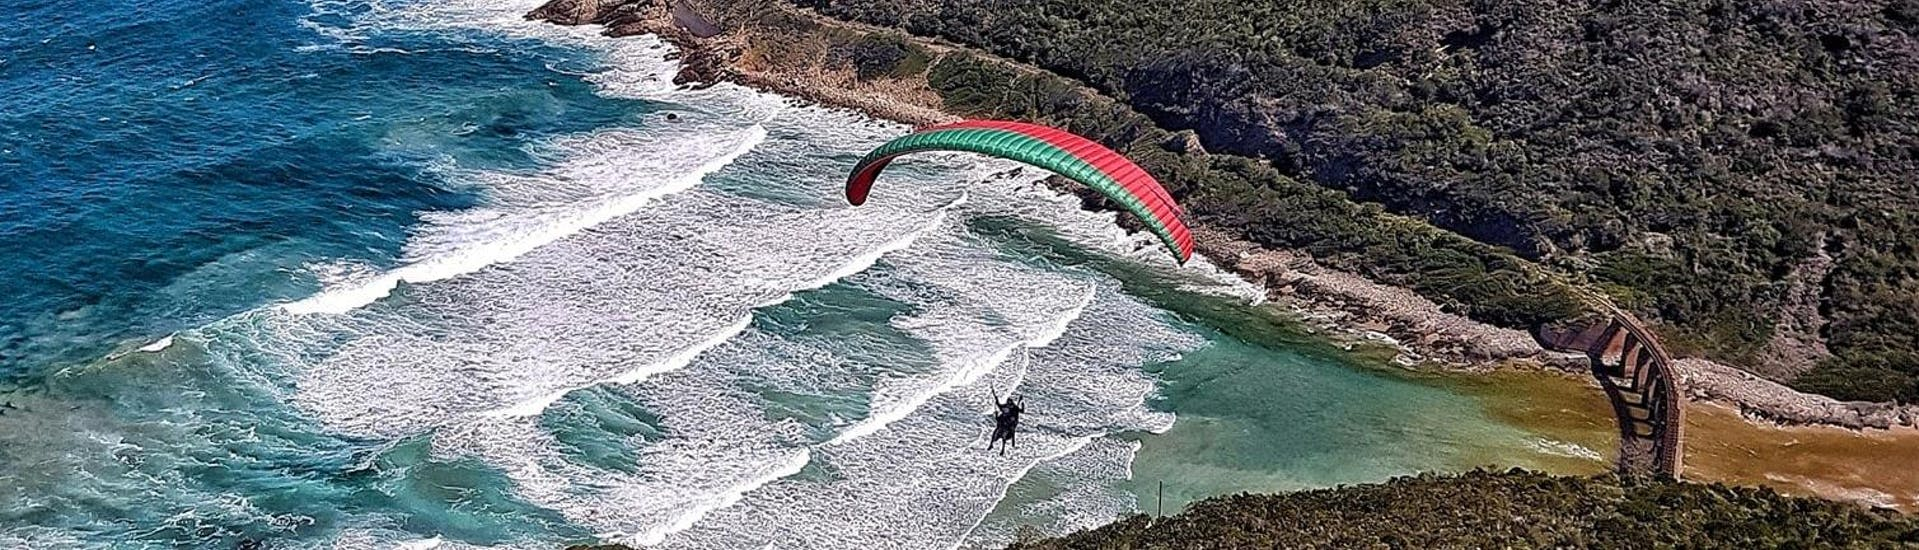 A tandem pilot from Dolphin Paragliding is landing with a client during the Paragliding in Wilderness - Adventure Flight at a beach.